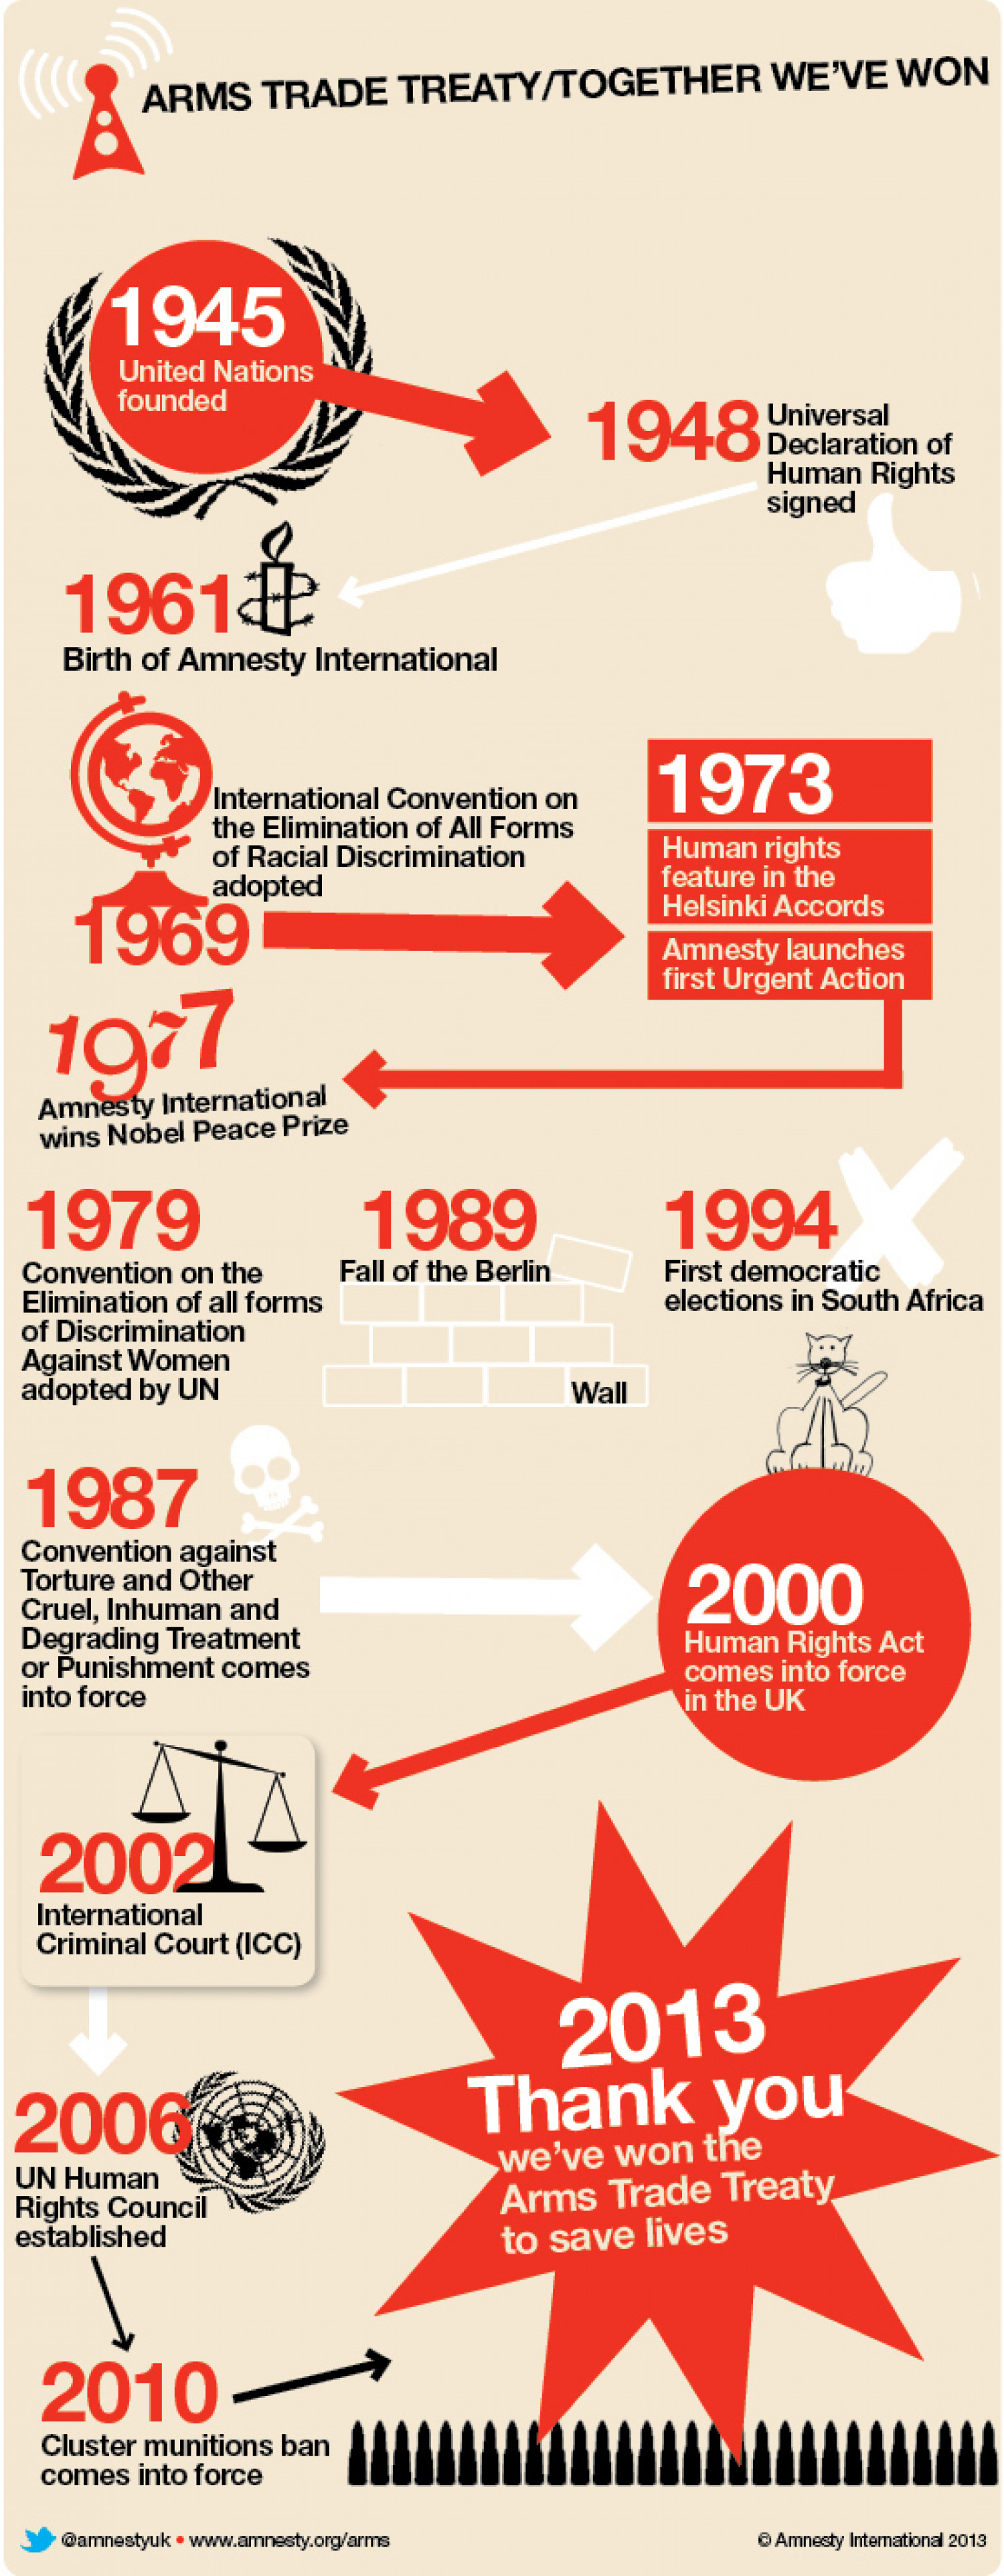 60 years of landmarks - the Arms Trade Treaty Infographic